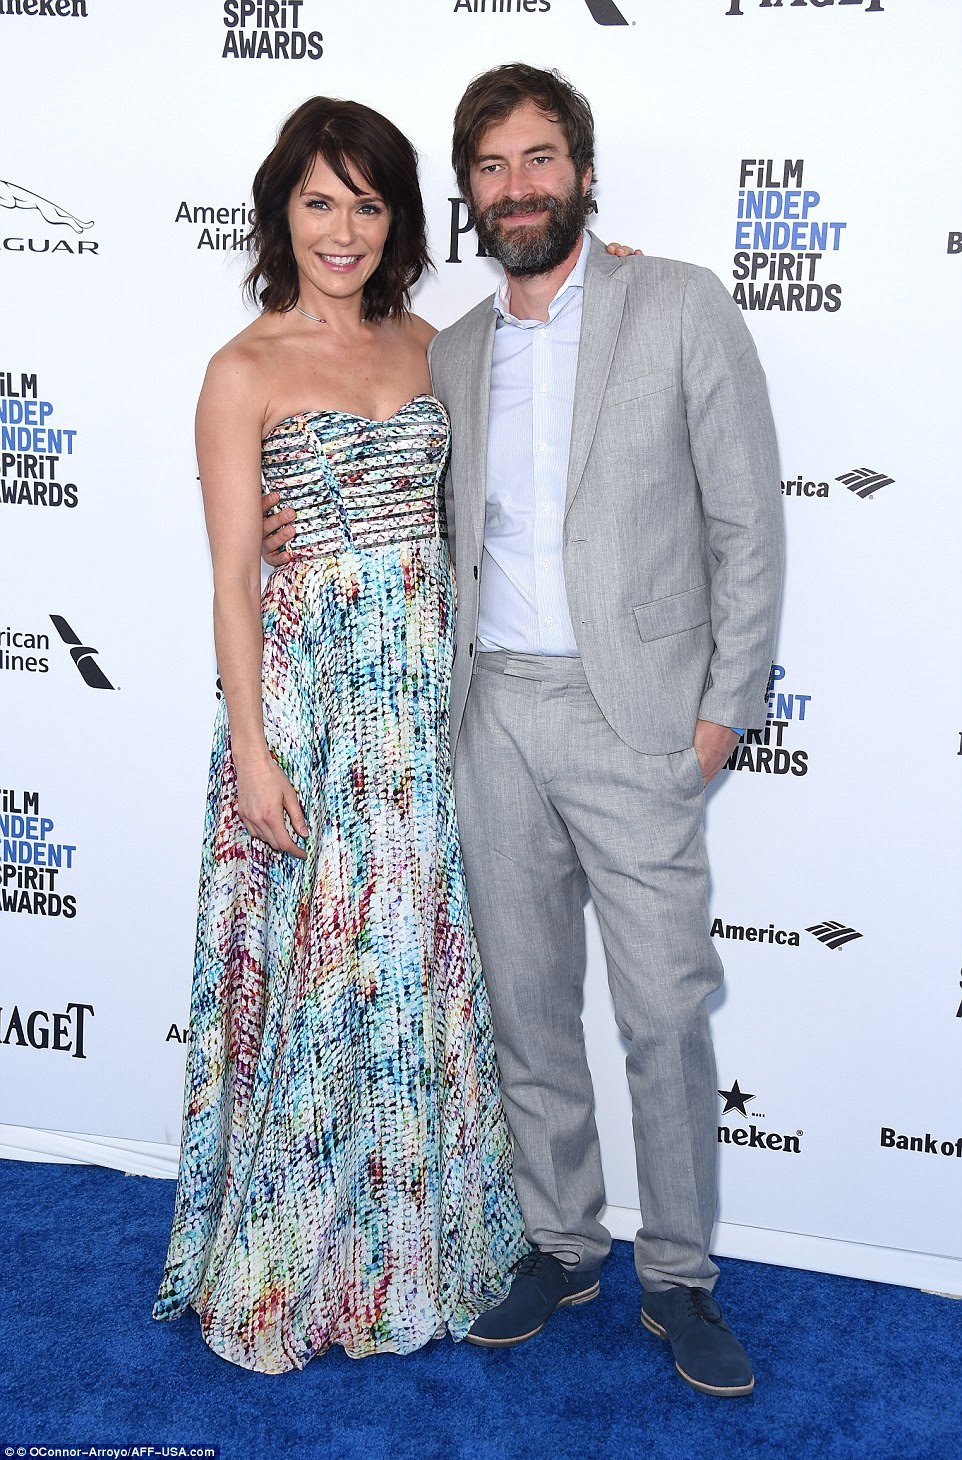 Coupled up: Katie Aselton and Mark Duplas were arm in arm for the annual awards show